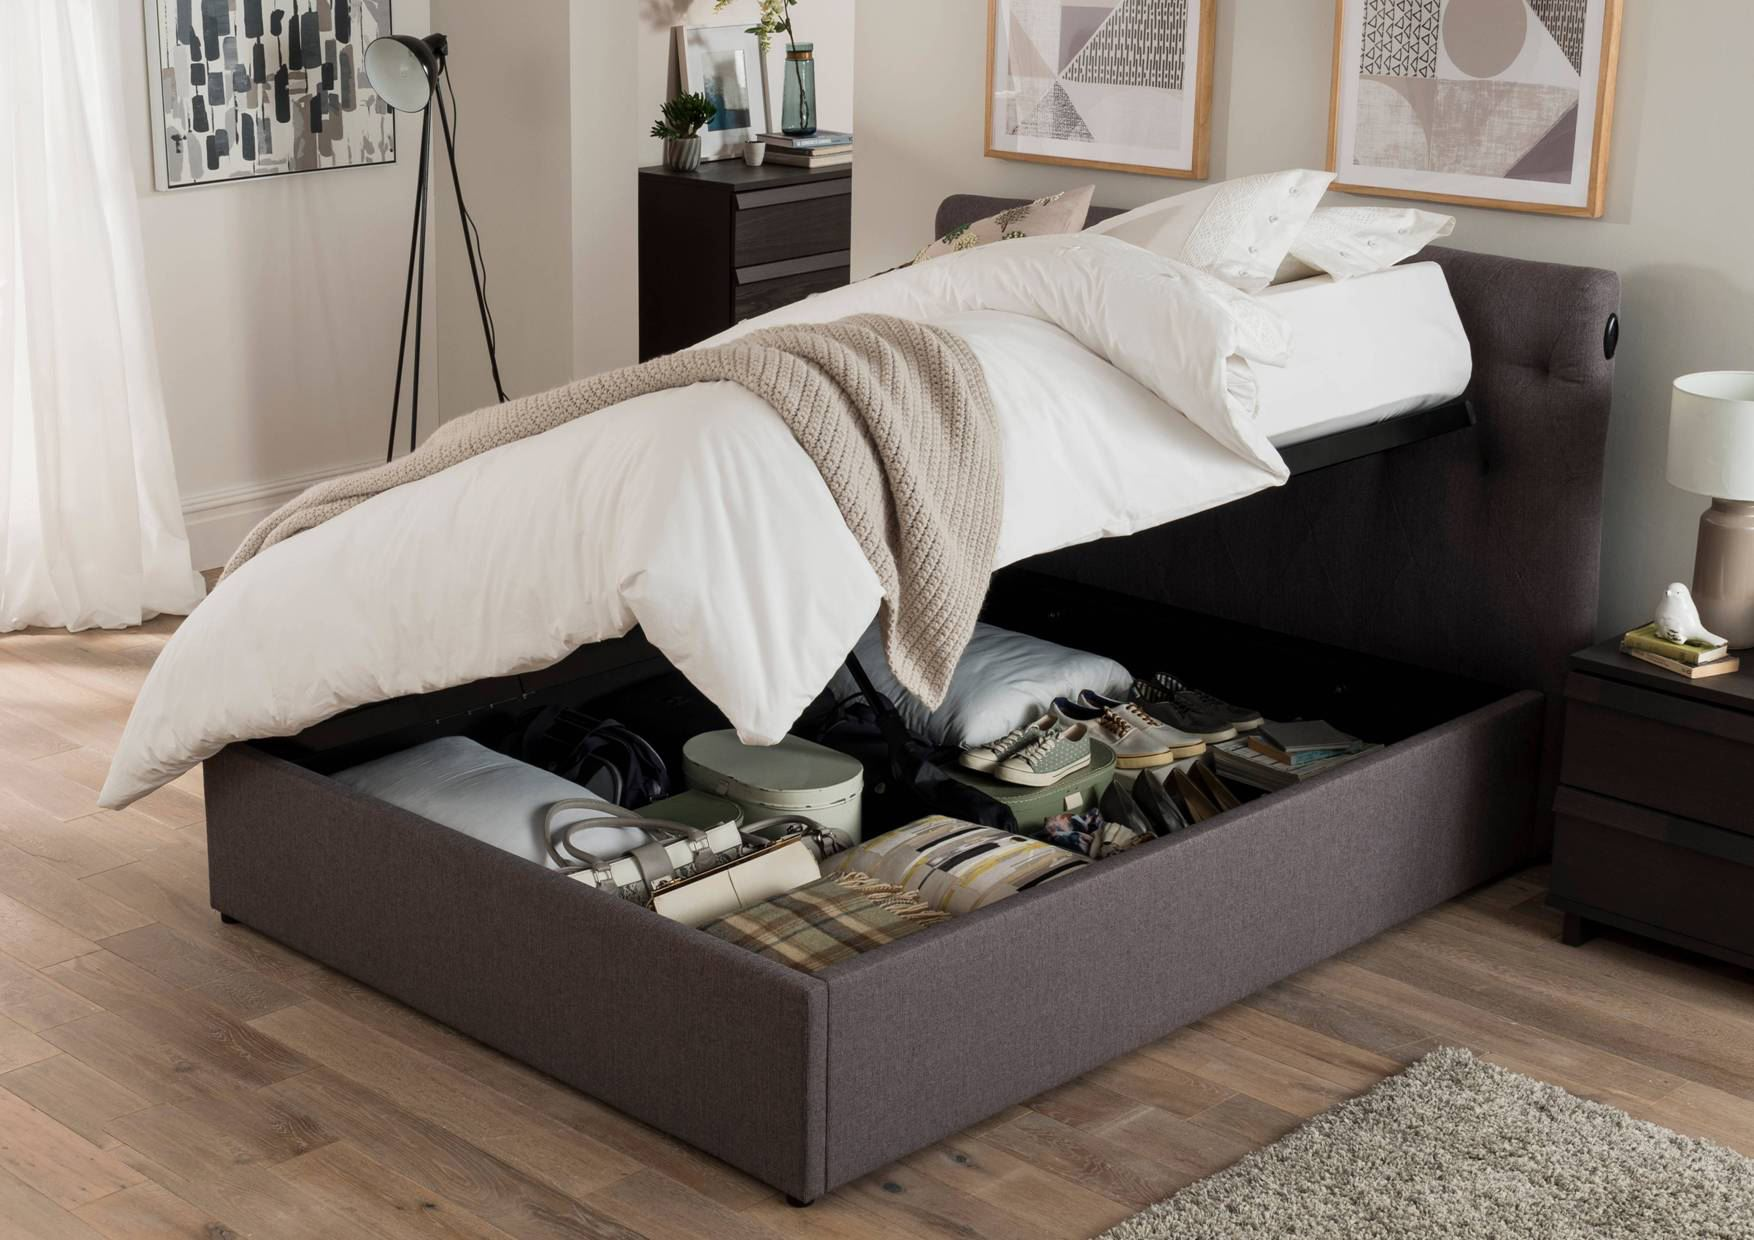 Ottoman Bedroom Storage Happy Beds Versace Fabric Bed Automatic Ottoman Storage Bedroom